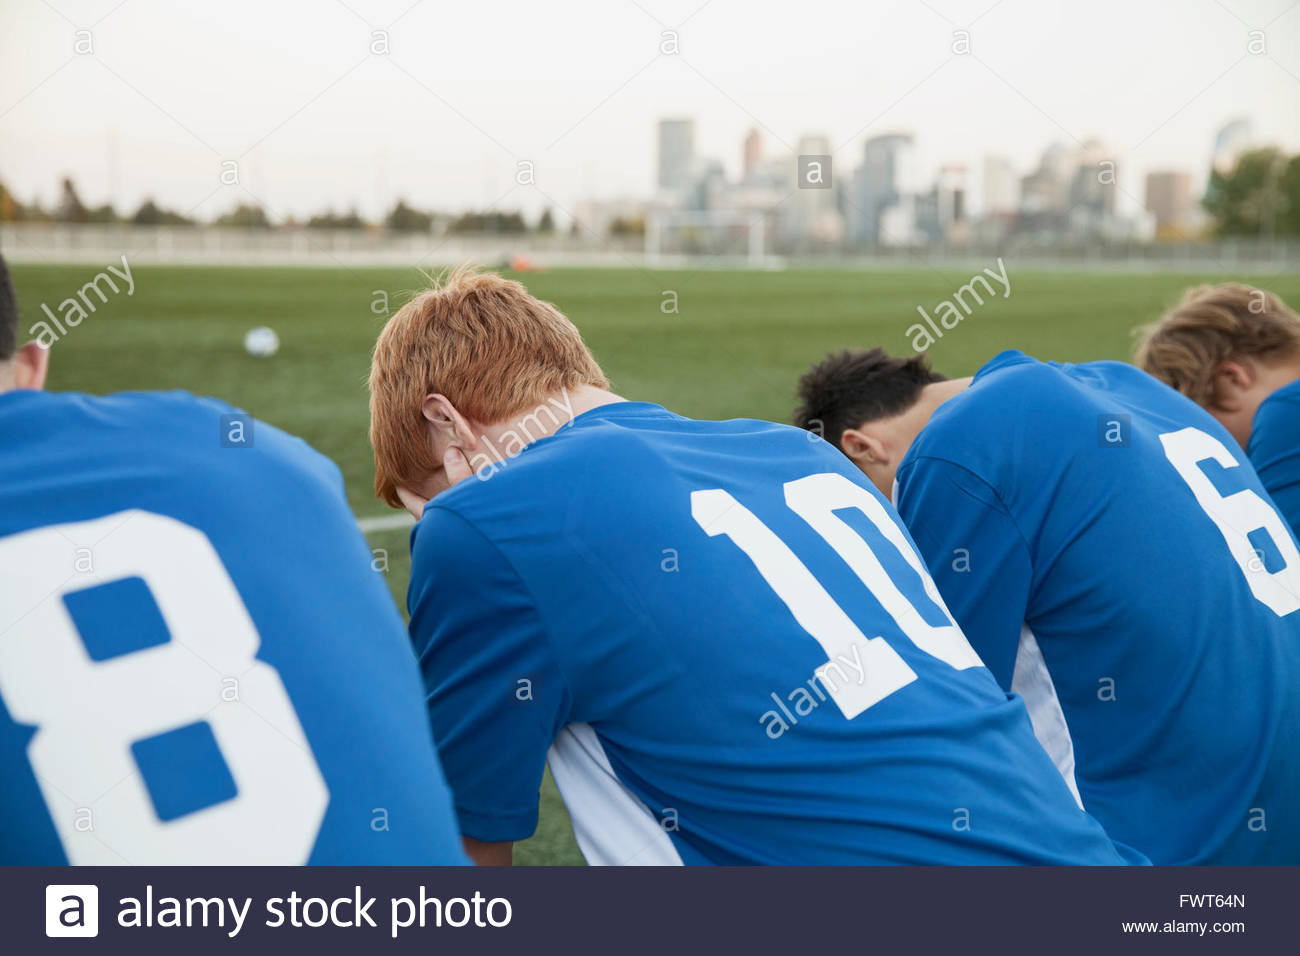 View from behind of soccer players on bench with heads bowed. - Stock Image